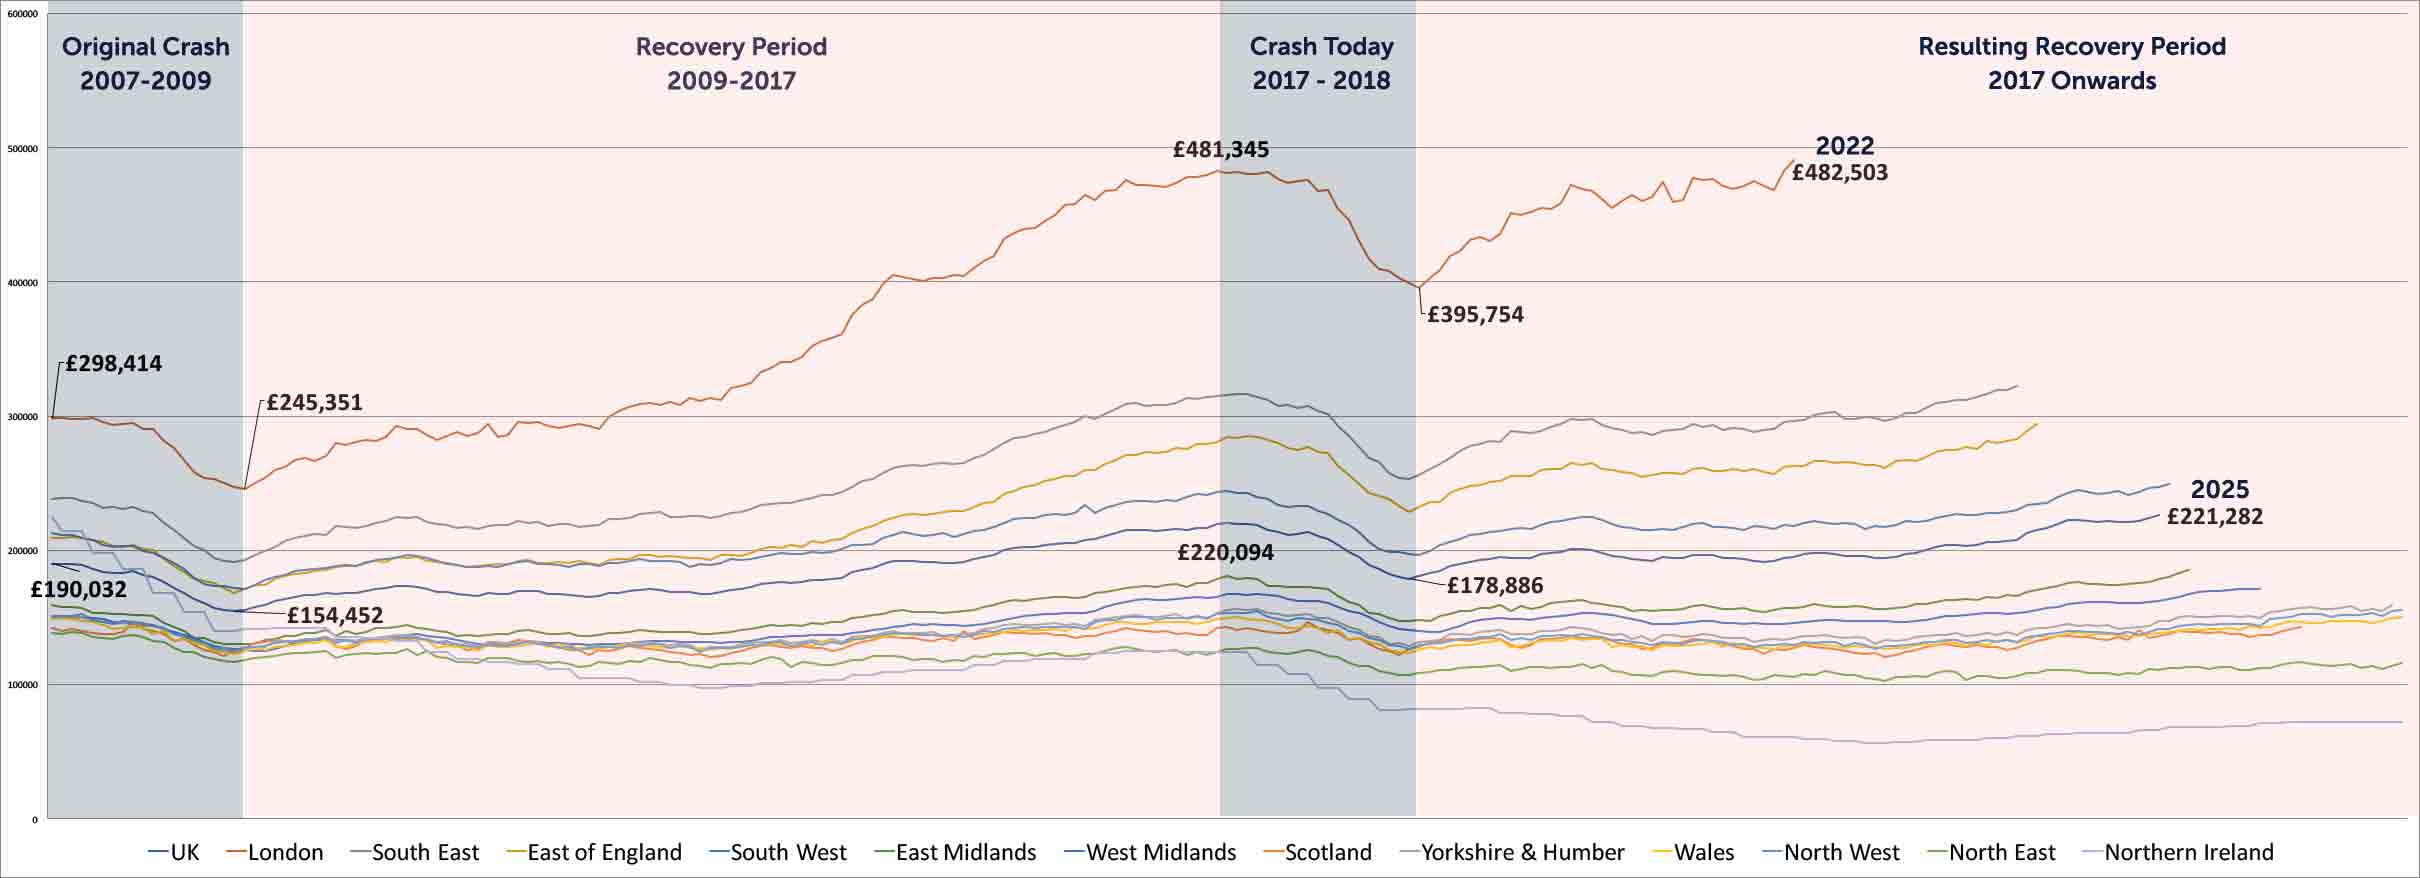 Graph shows all UK regions, but only provides data points for London and the UK.